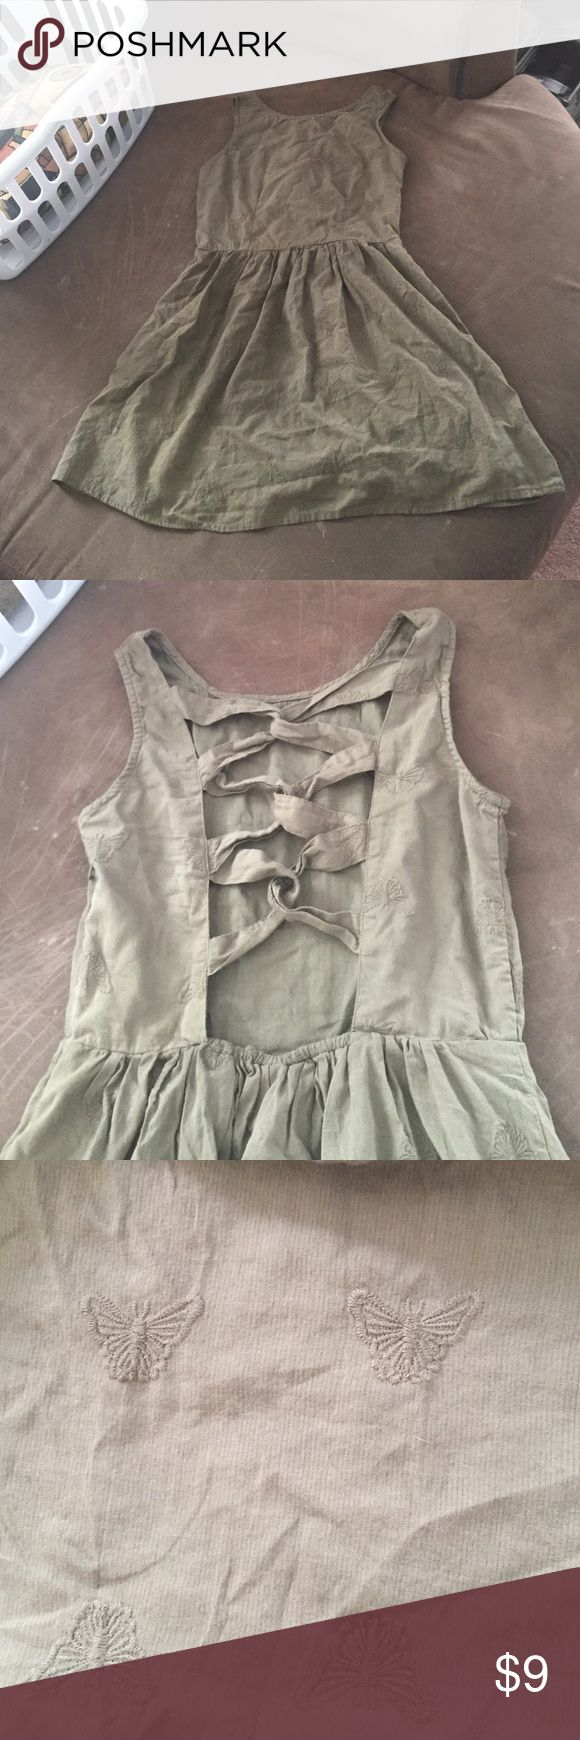 5 for $20! M open back green butterfly sundress Above the knee army green butterfly print sundress, has two-layered skirt and an open criss cross back. Zips on side. Size medium, joe boxer brand. Never worn, given as a gift. Love so much but a little too tight on my chest! Dresses Midi